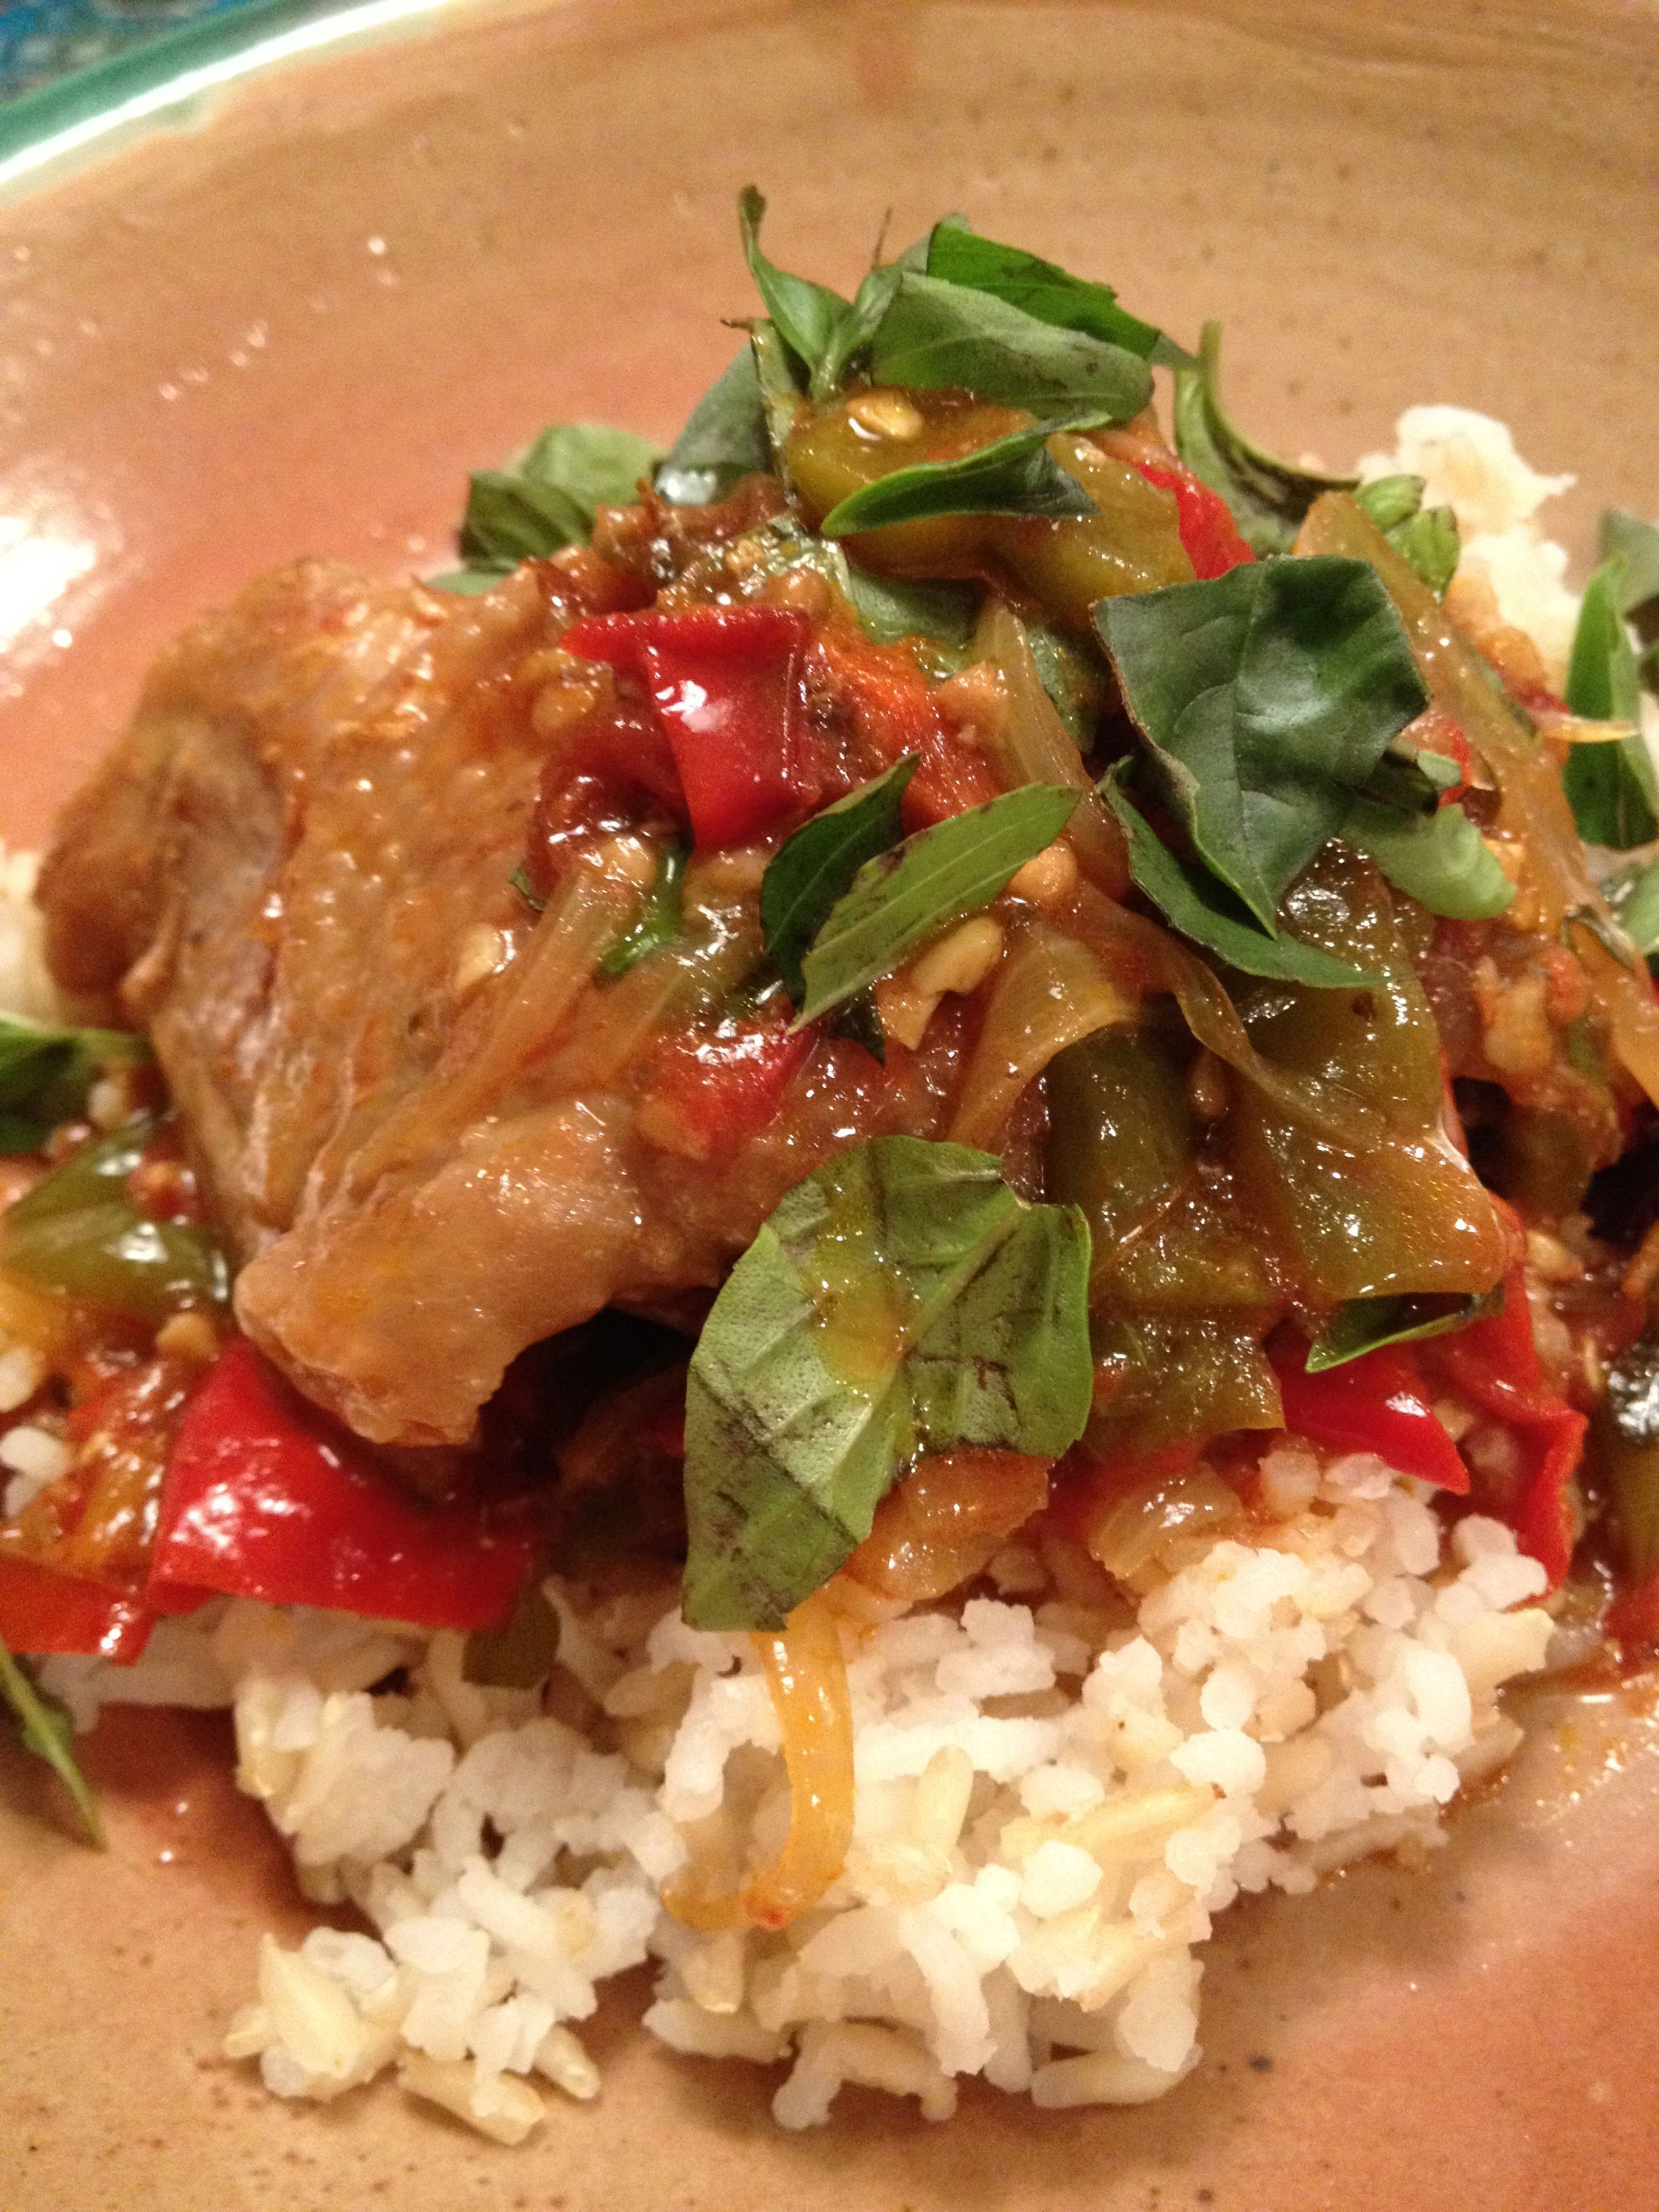 To me chicken basquaise served over rice is a colorful version of the ...